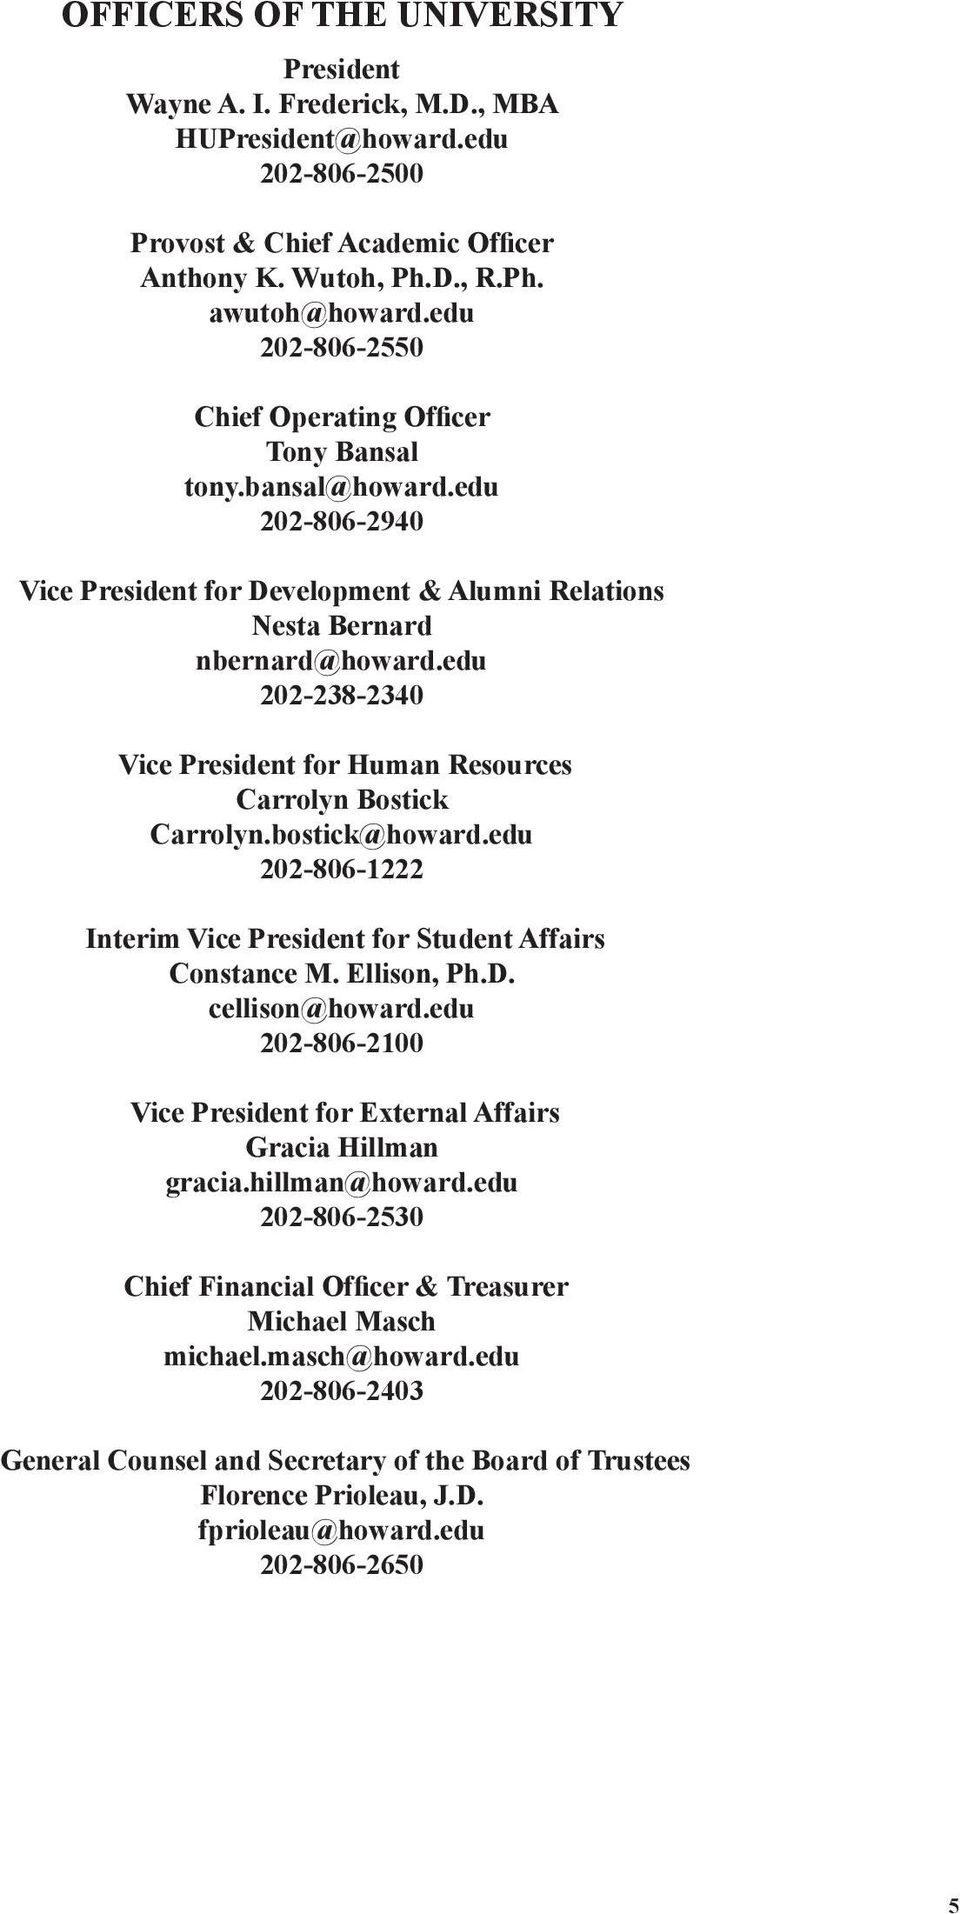 edu 202-238-2340 Vice President for Human Resources Carrolyn Bostick Carrolyn.bostick@howard.edu 202-806-1222 Interim Vice President for Student Affairs Constance M. Ellison, Ph.D. cellison@howard.